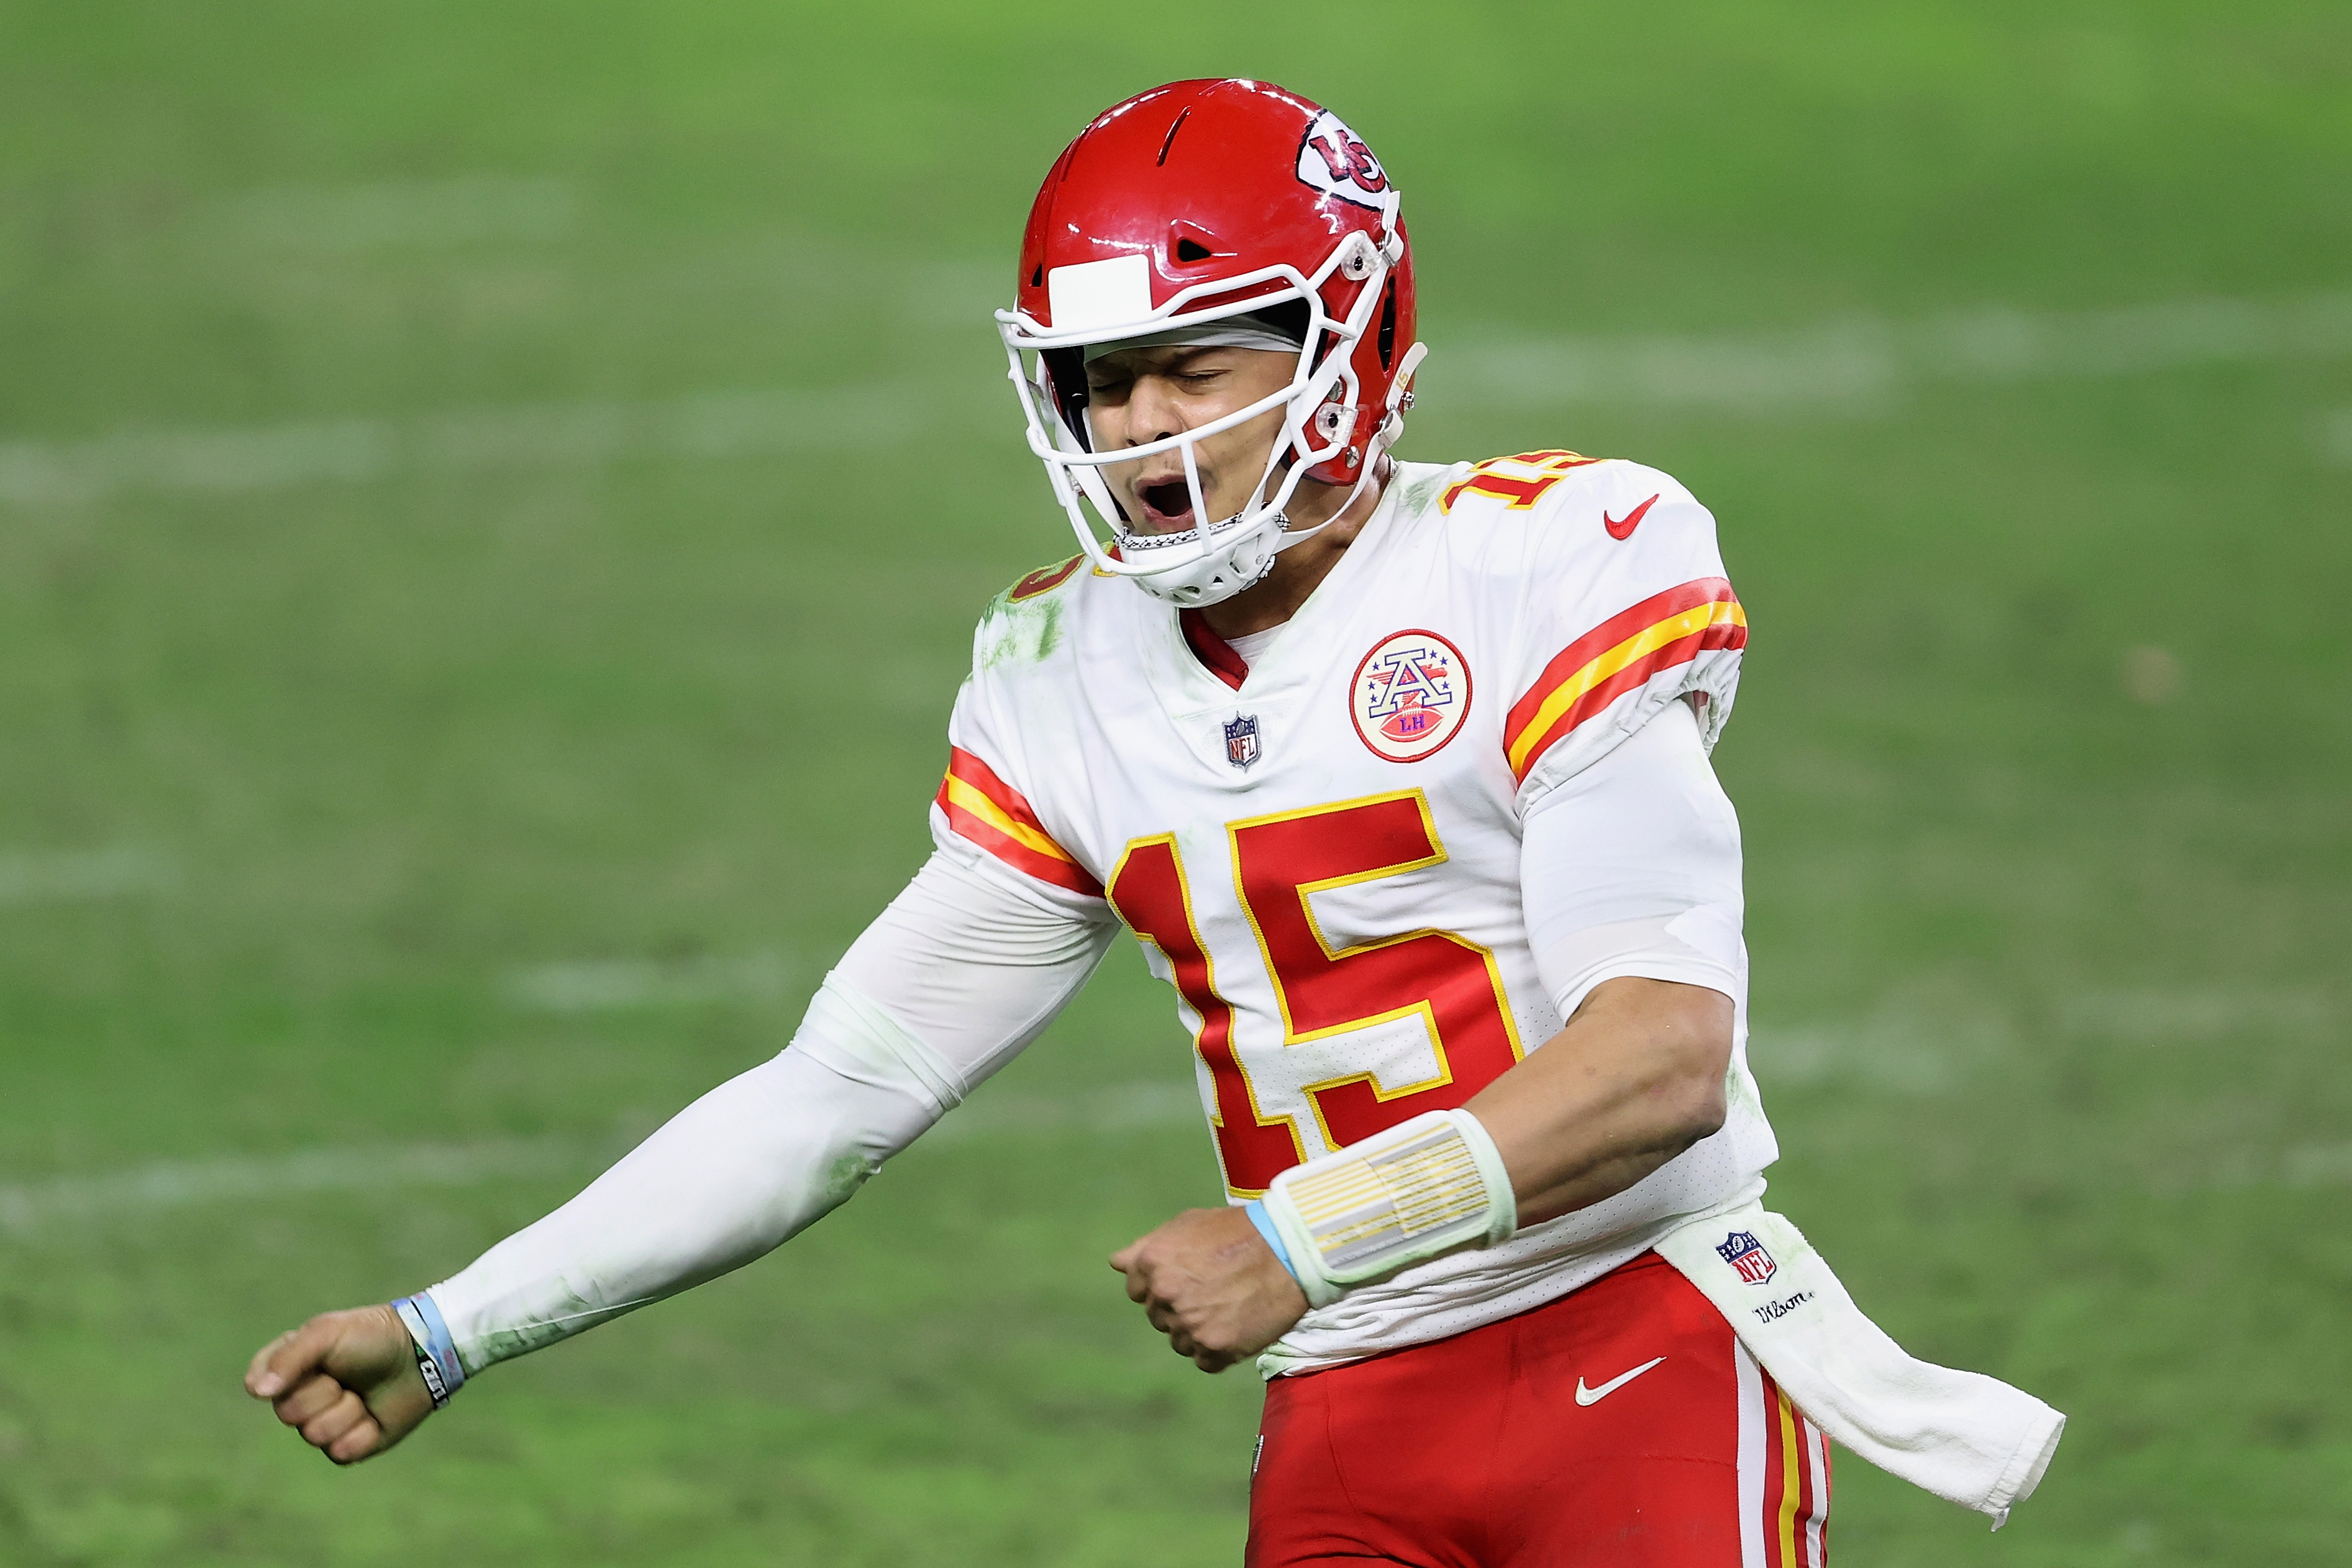 Patrick Mahomes of the Kansas City Chiefs